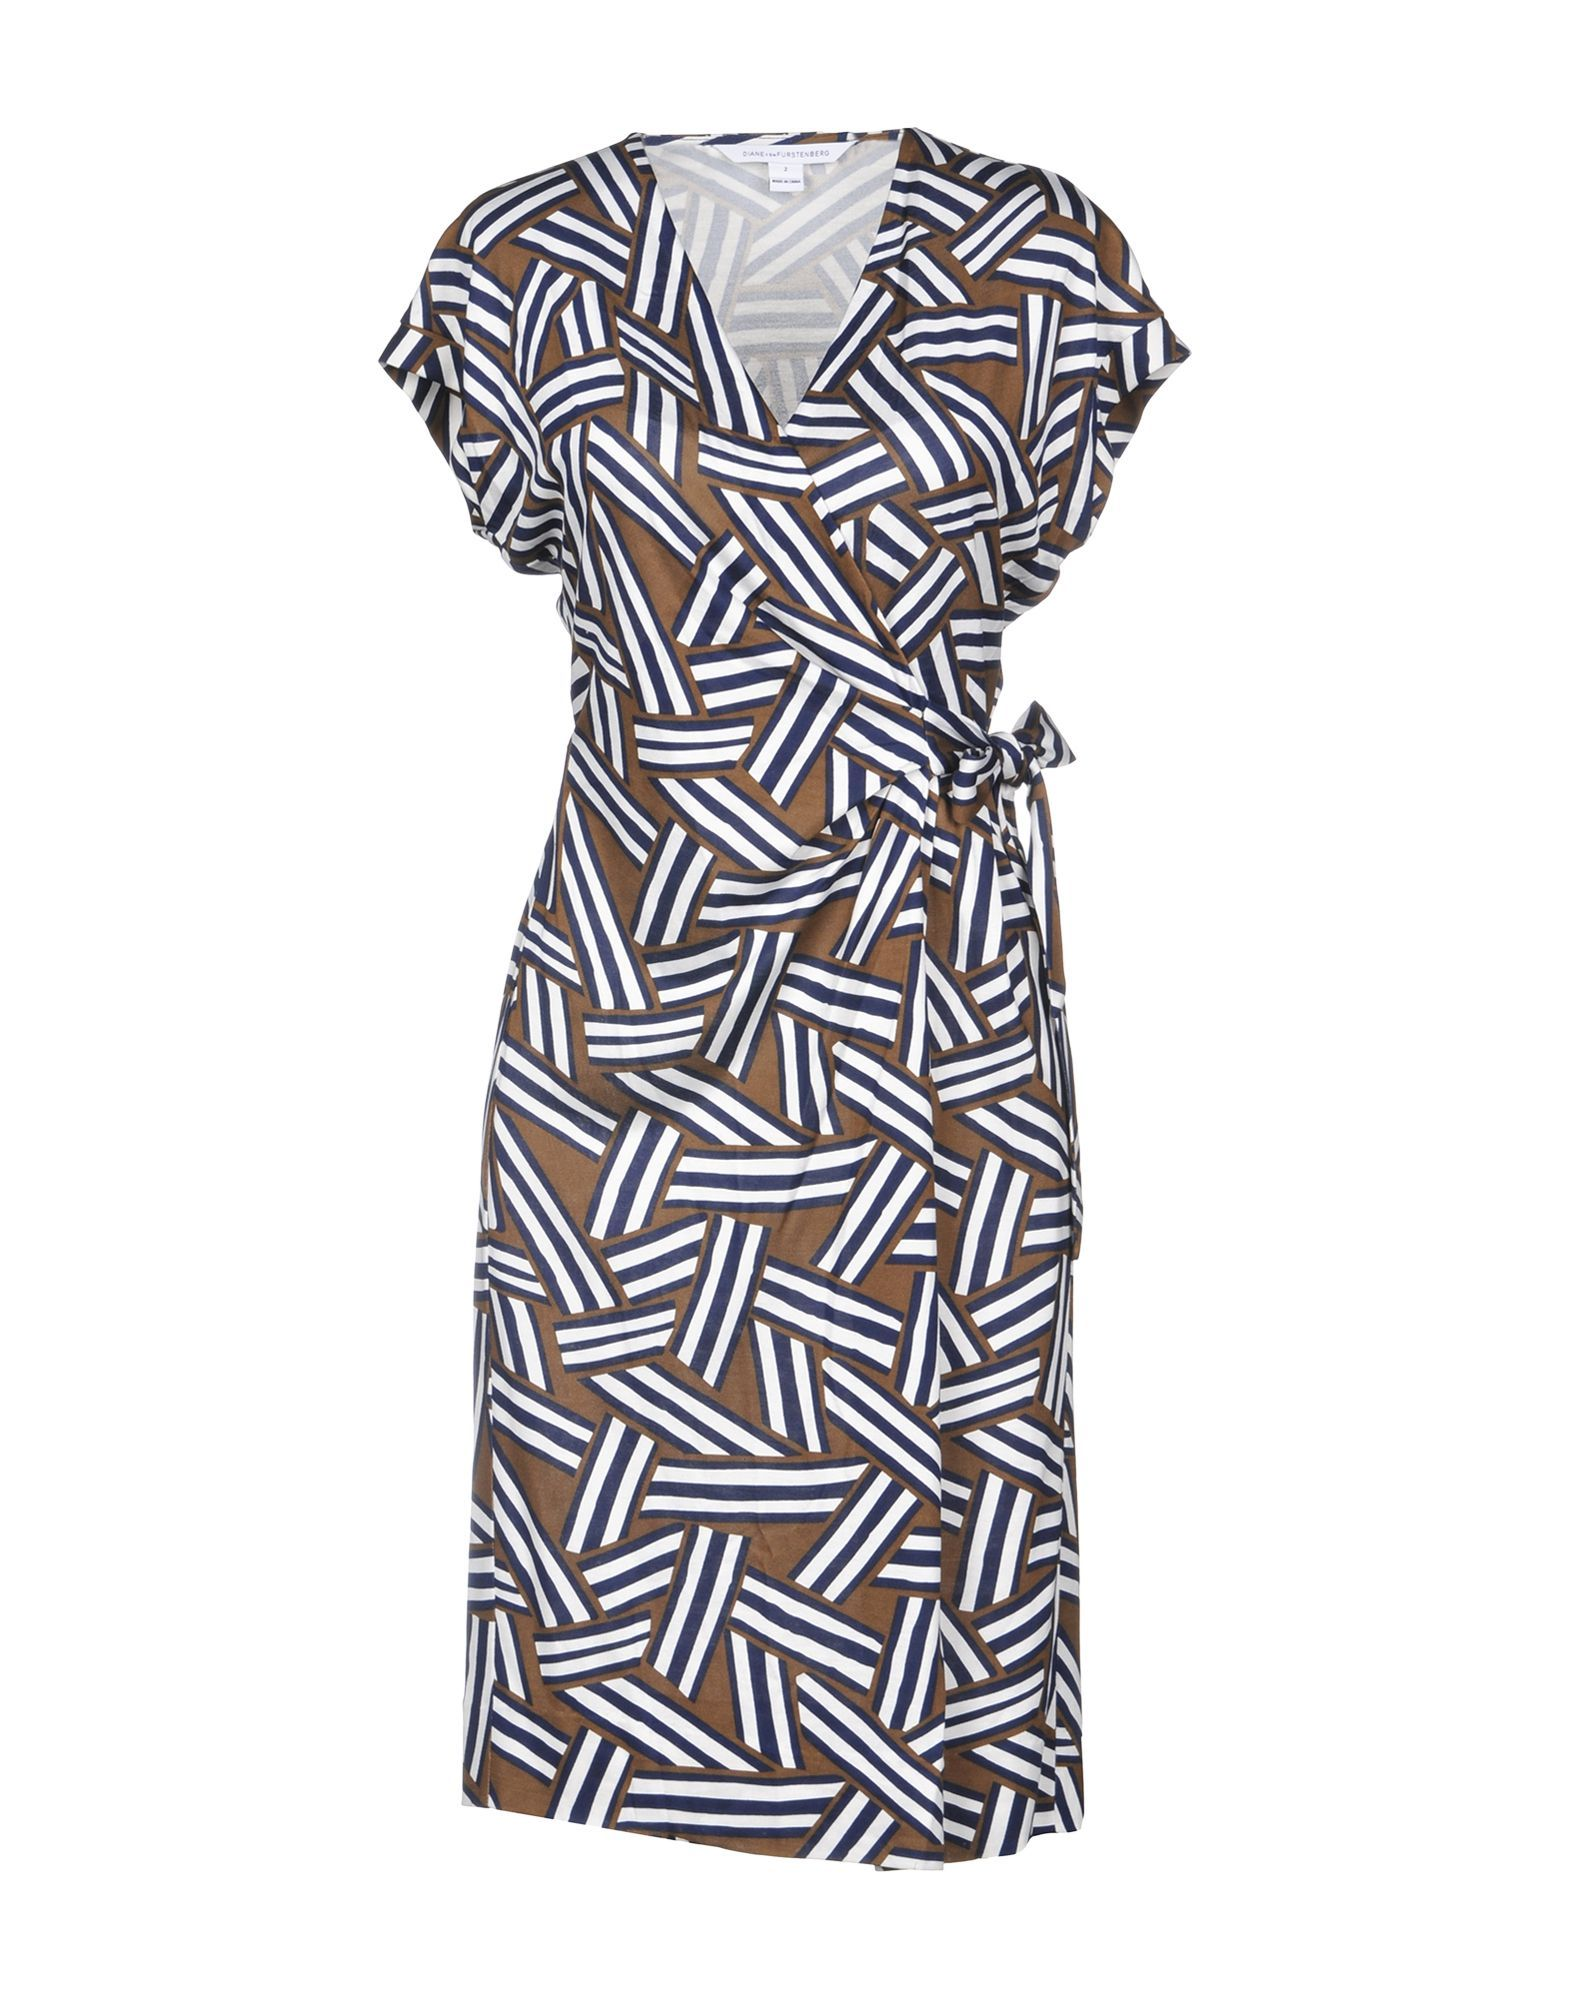 Diane Von Furstenberg Dark Blue Print Silk Wrap Dress